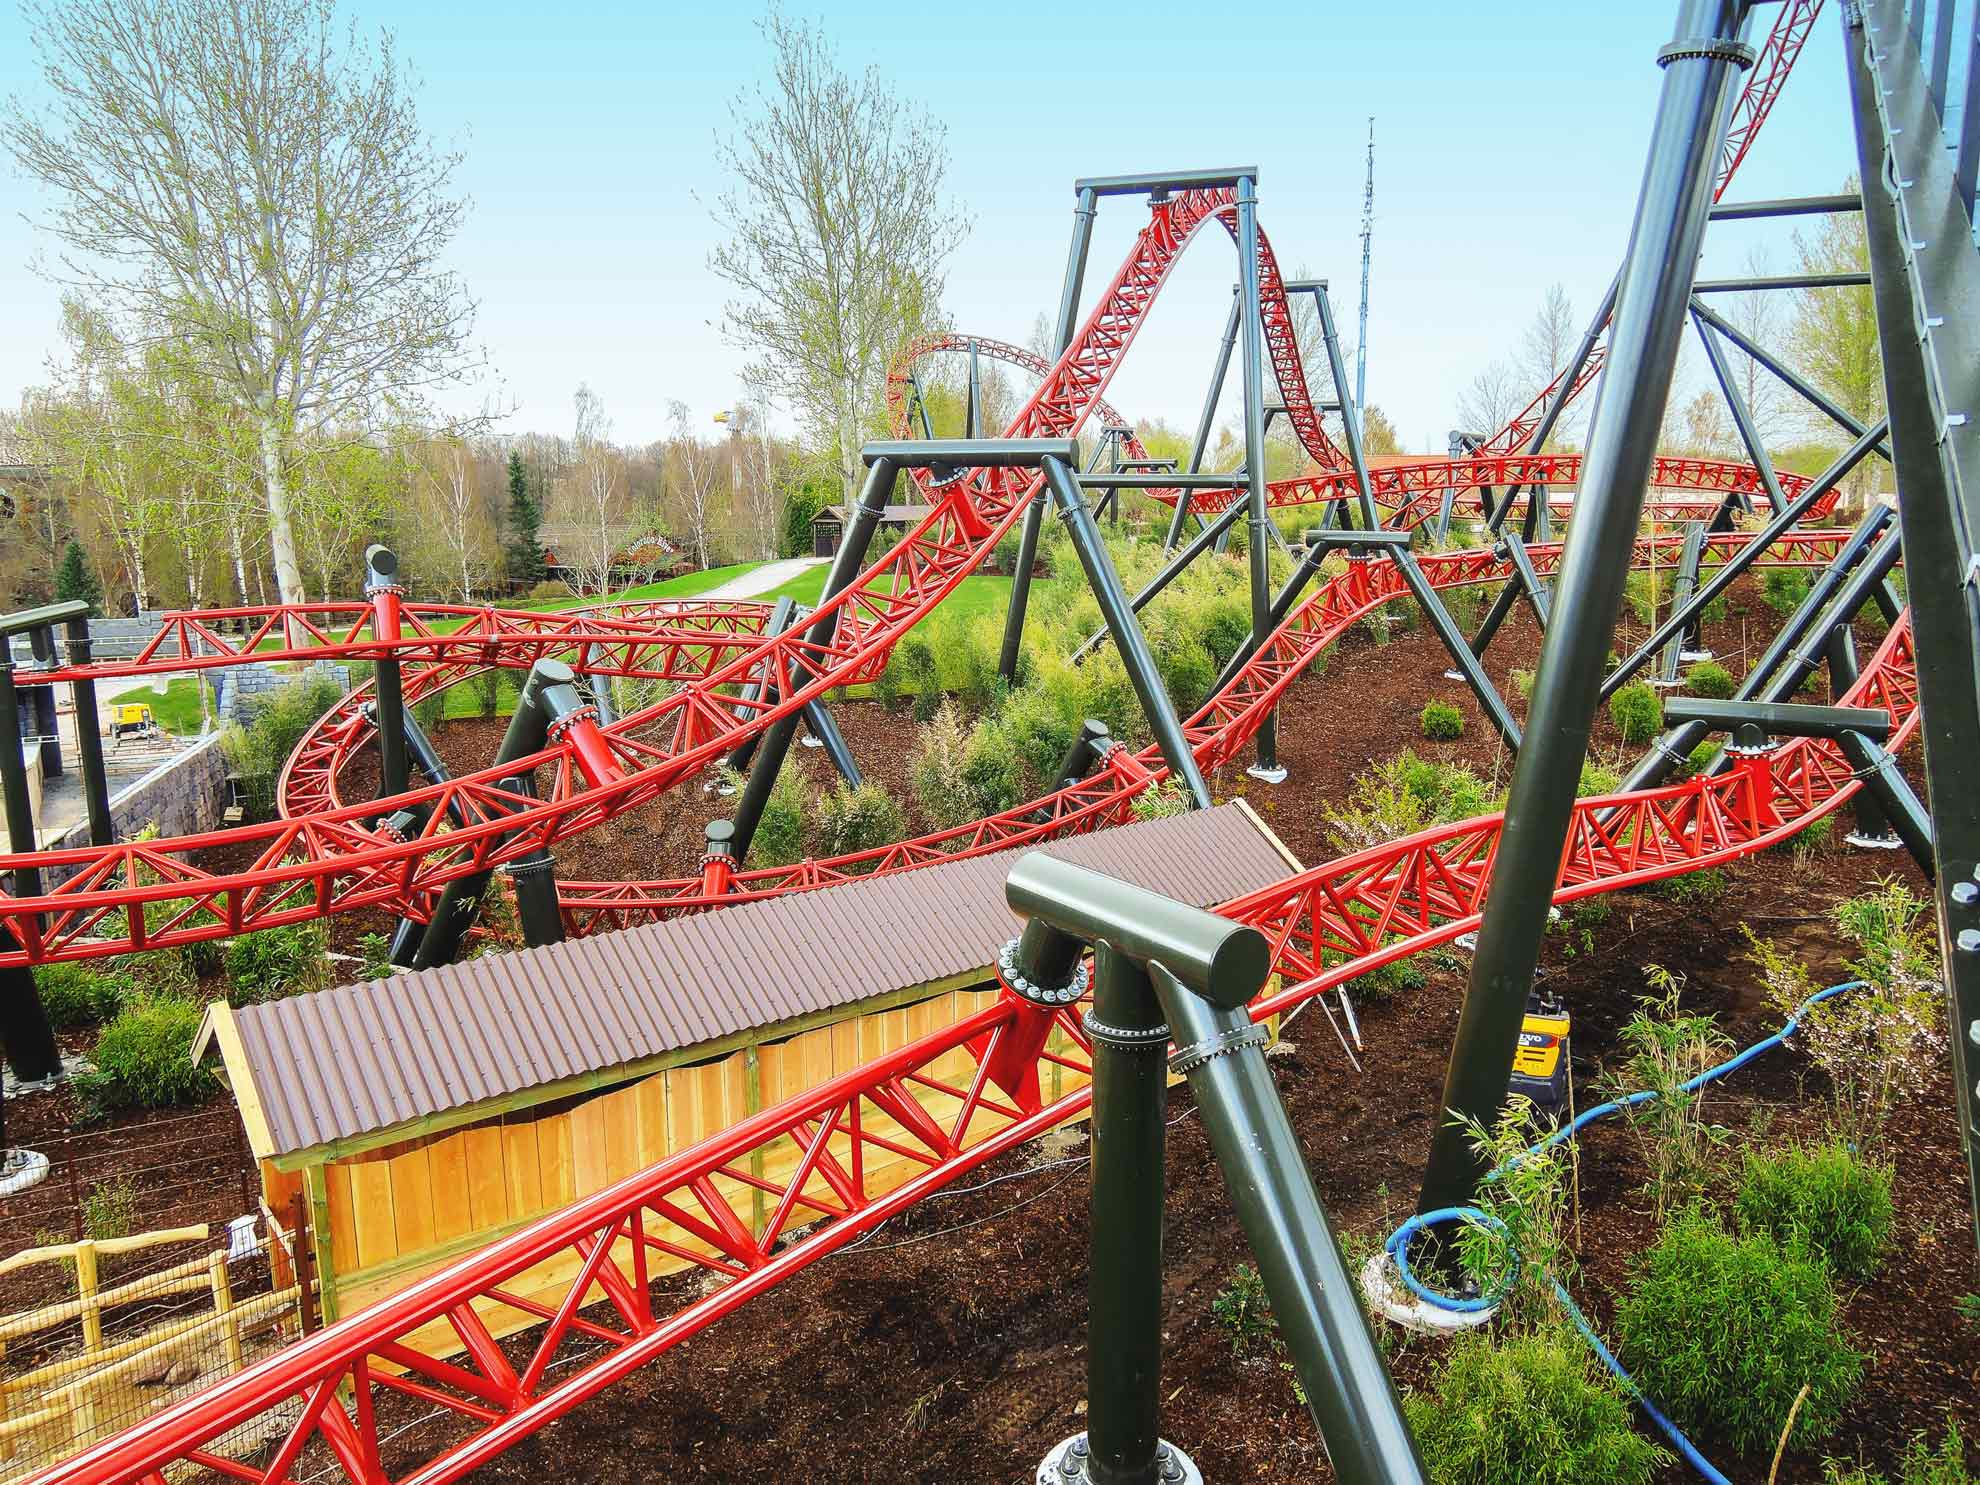 Photo of the Dragekongen coaster at the Wild Asia Area at Djurs Sommerland